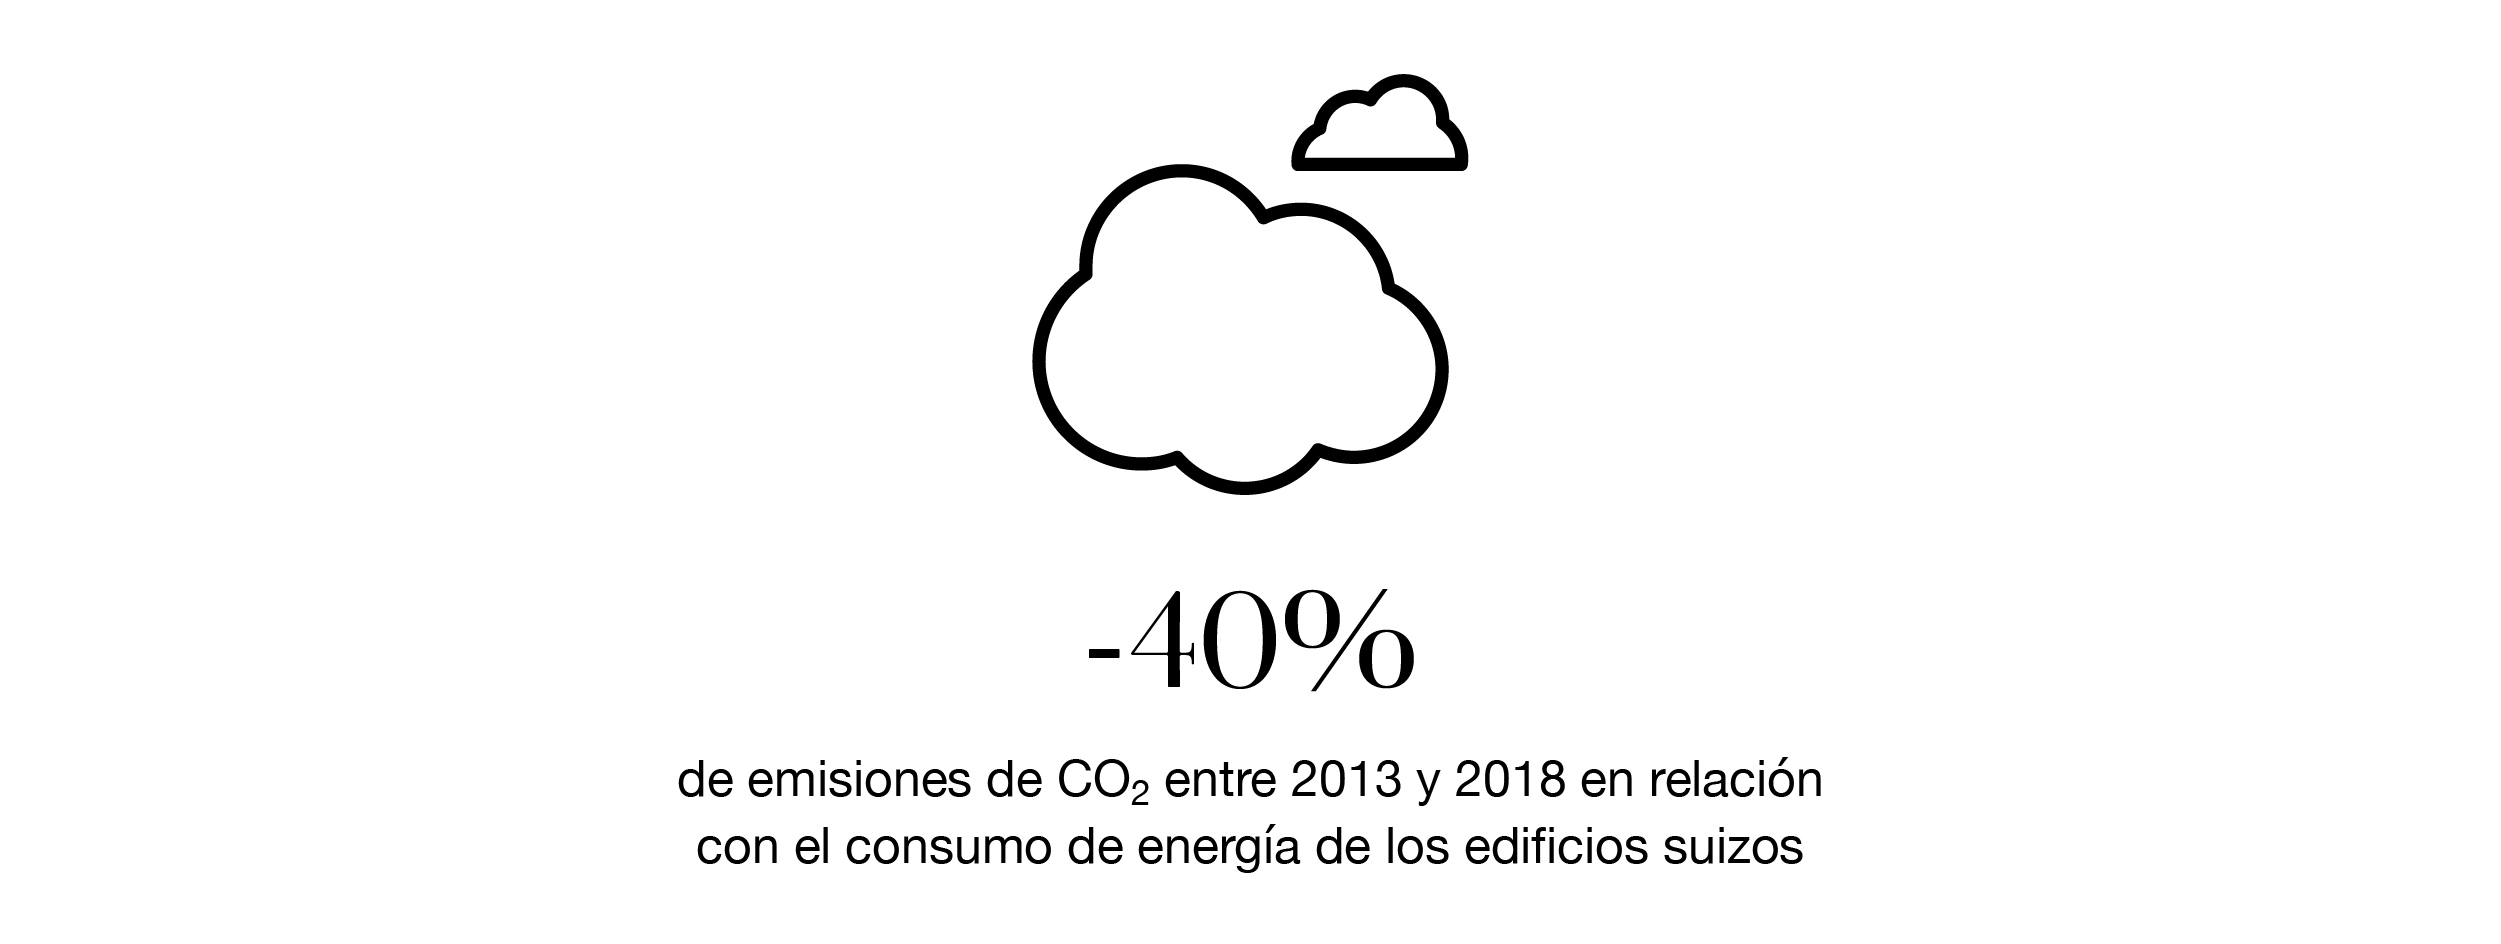 icon showing rate of CO2 emission